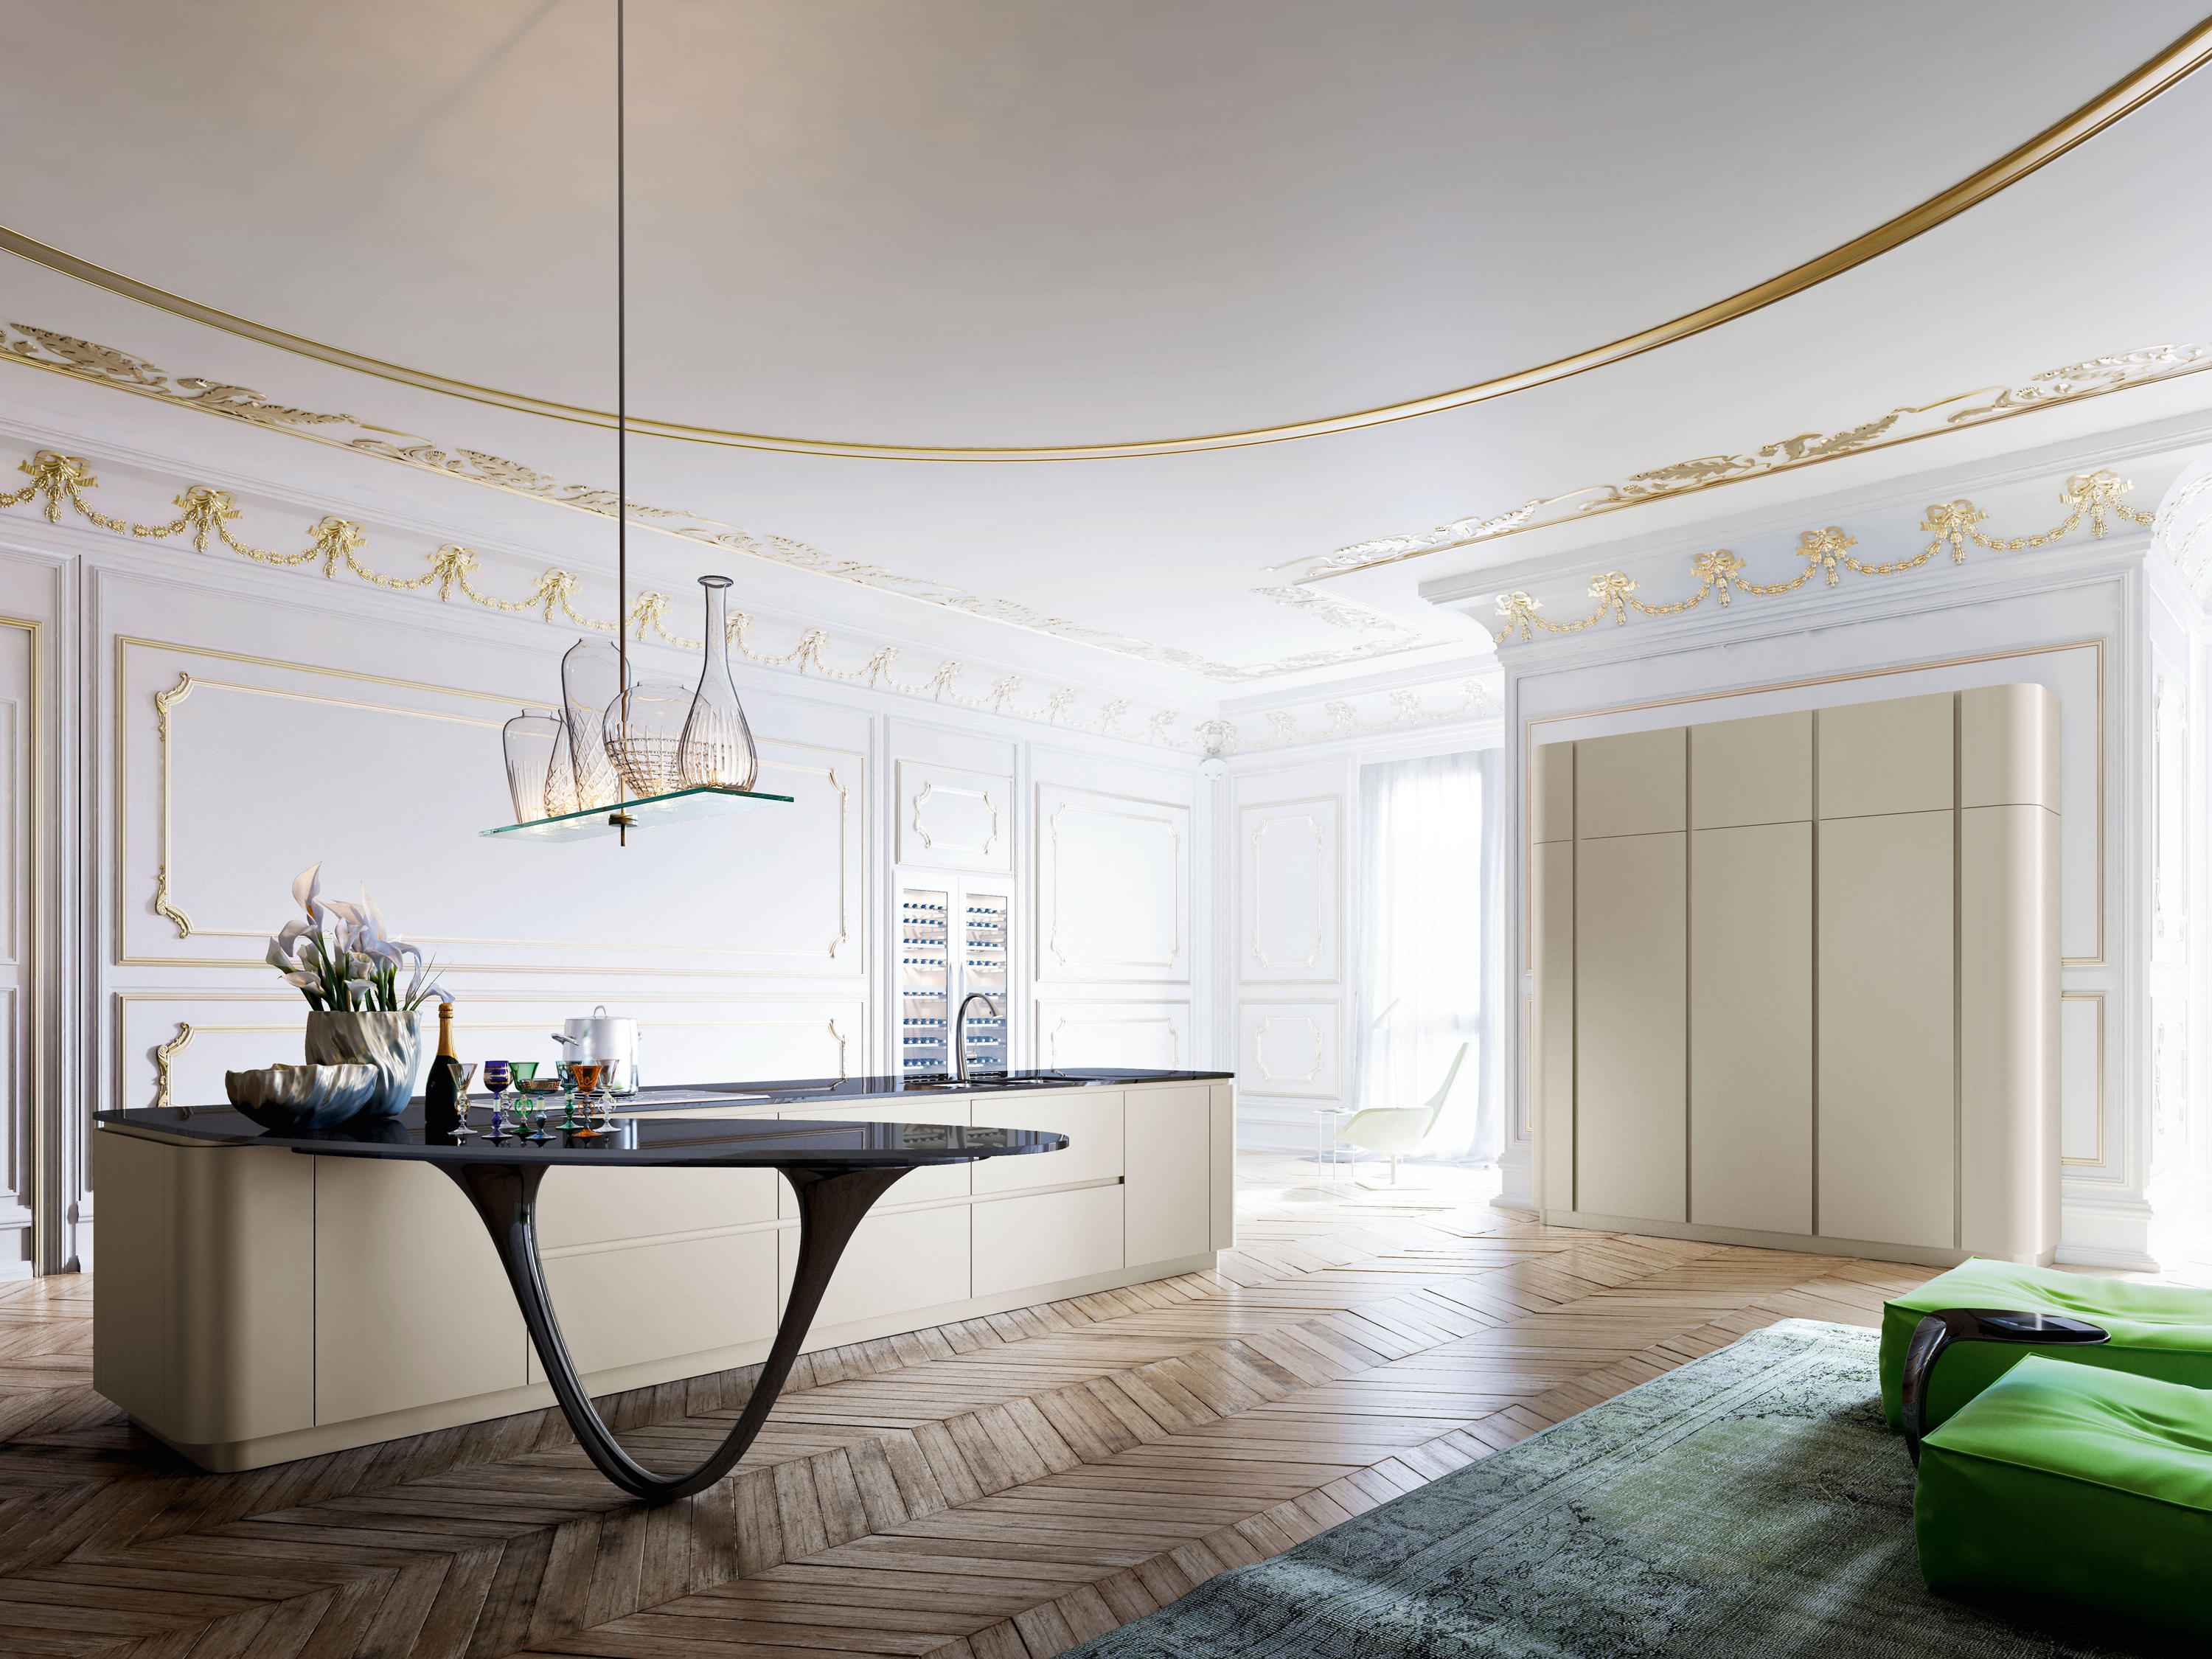 ^ Ola 25 Gold Limited dition - Fitted kitchens by Snaidero rchitonic